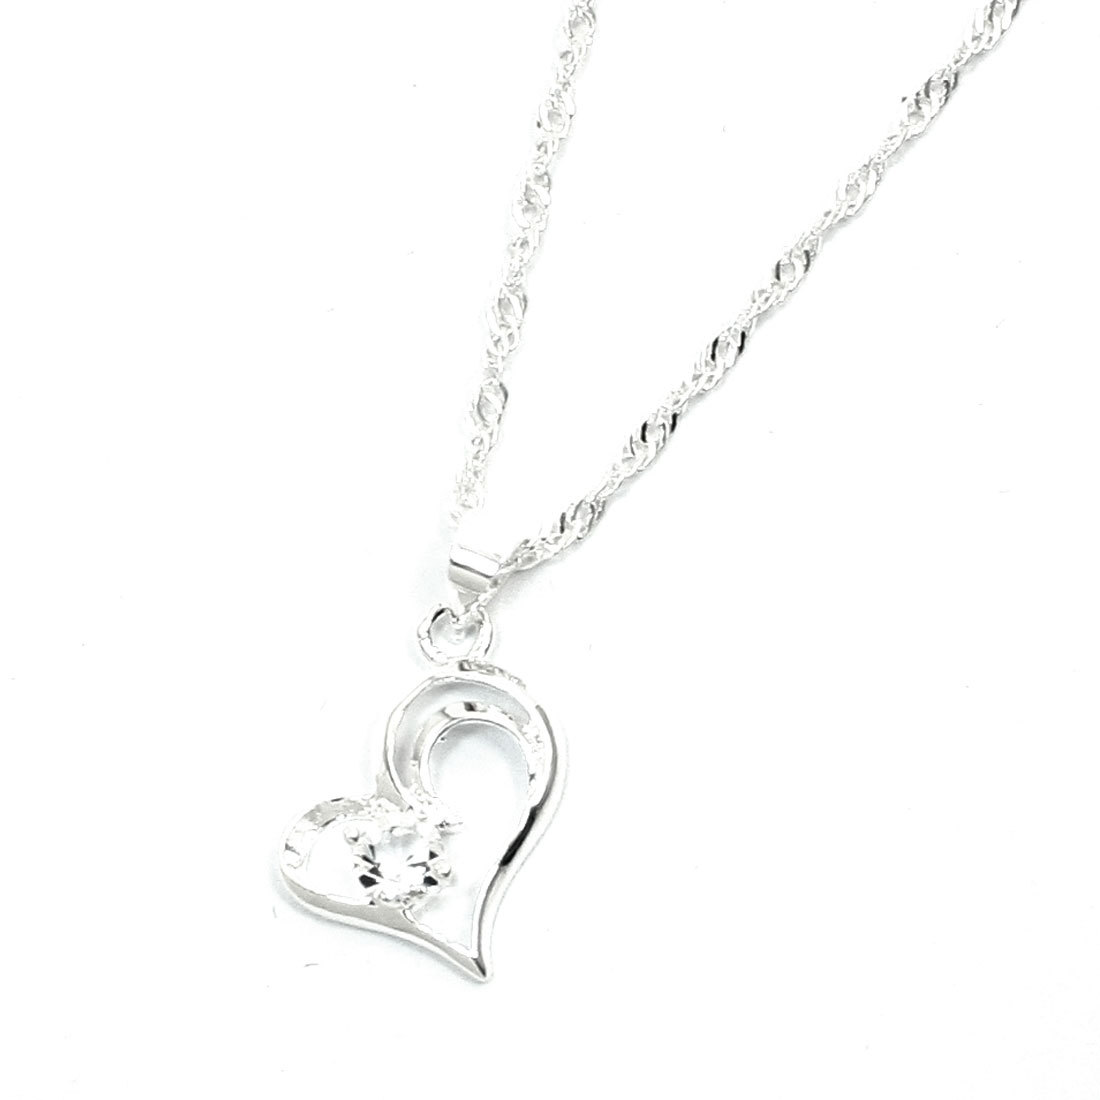 Women Rhinestone Inlaid Heart Shape Dangle Alloy Link Necklace Chain